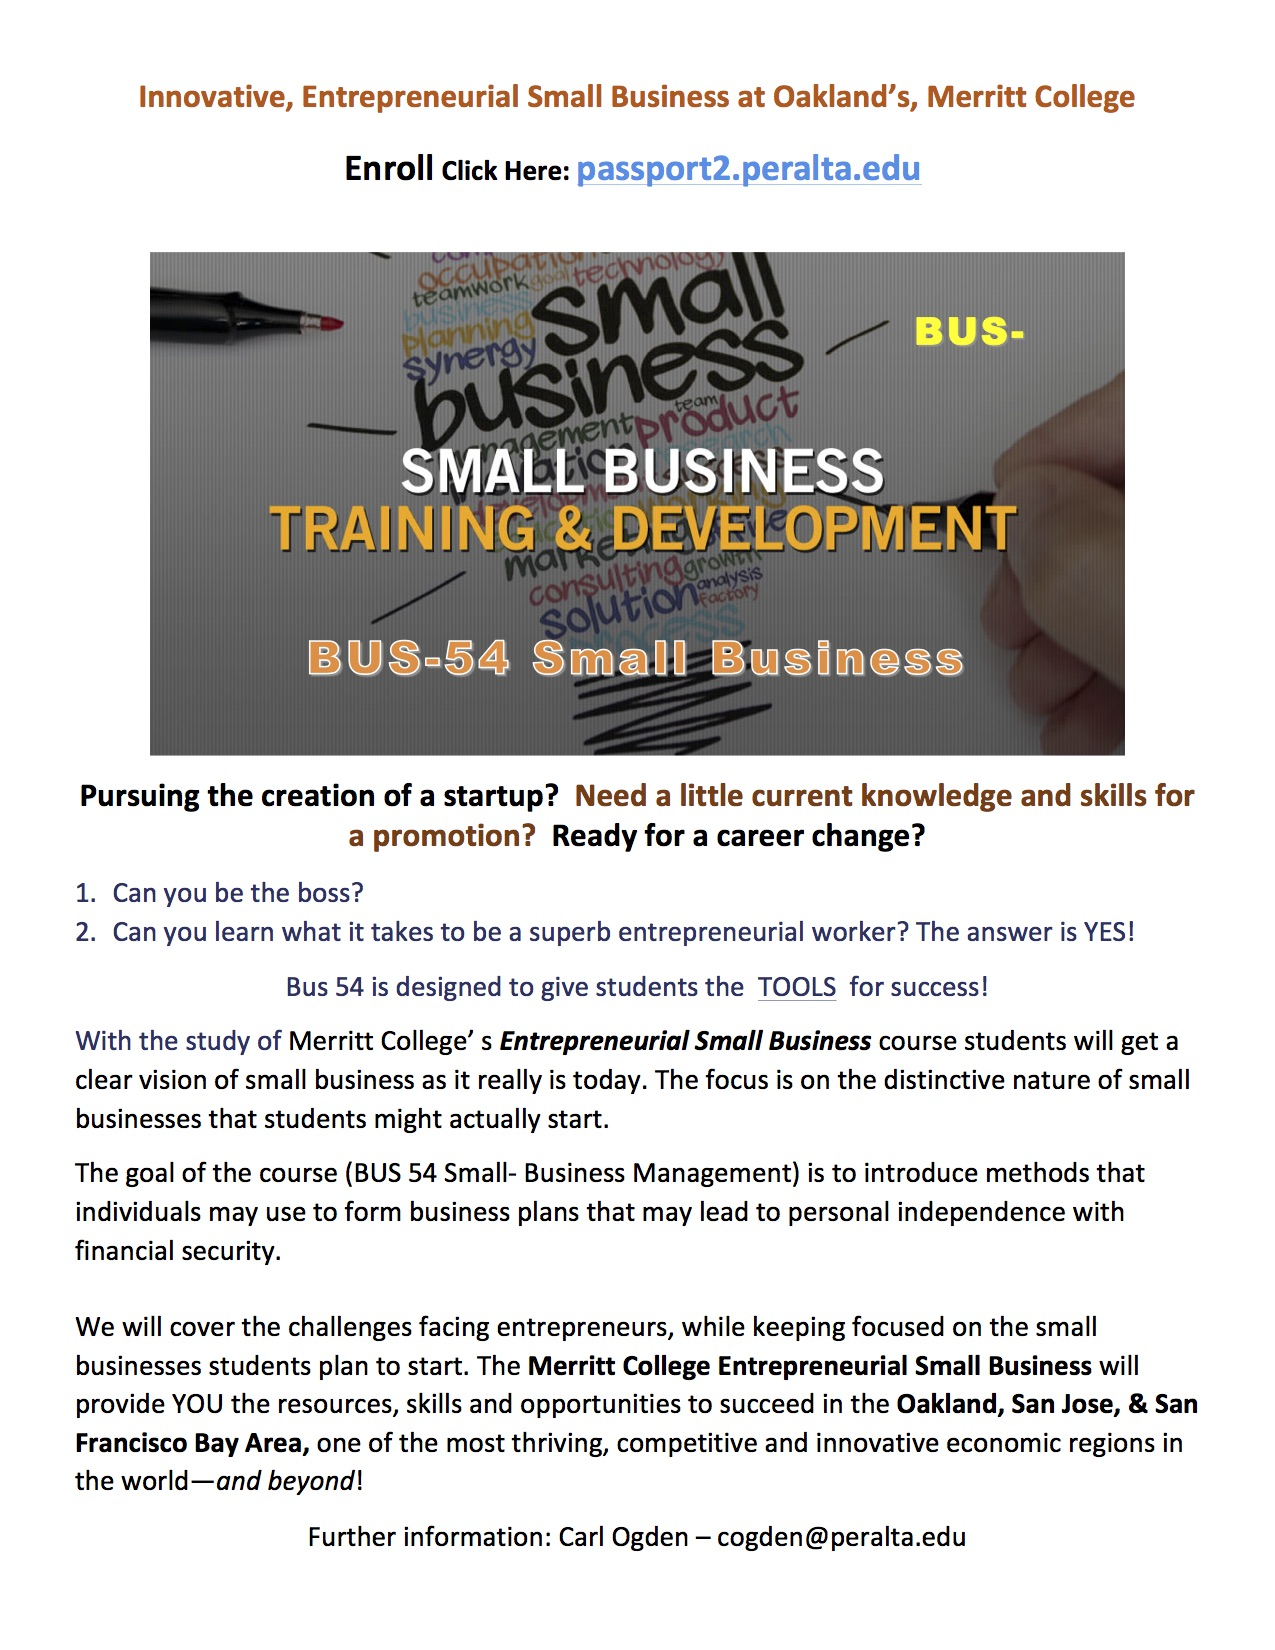 1 2 3 small business flyer bus 54 late start with